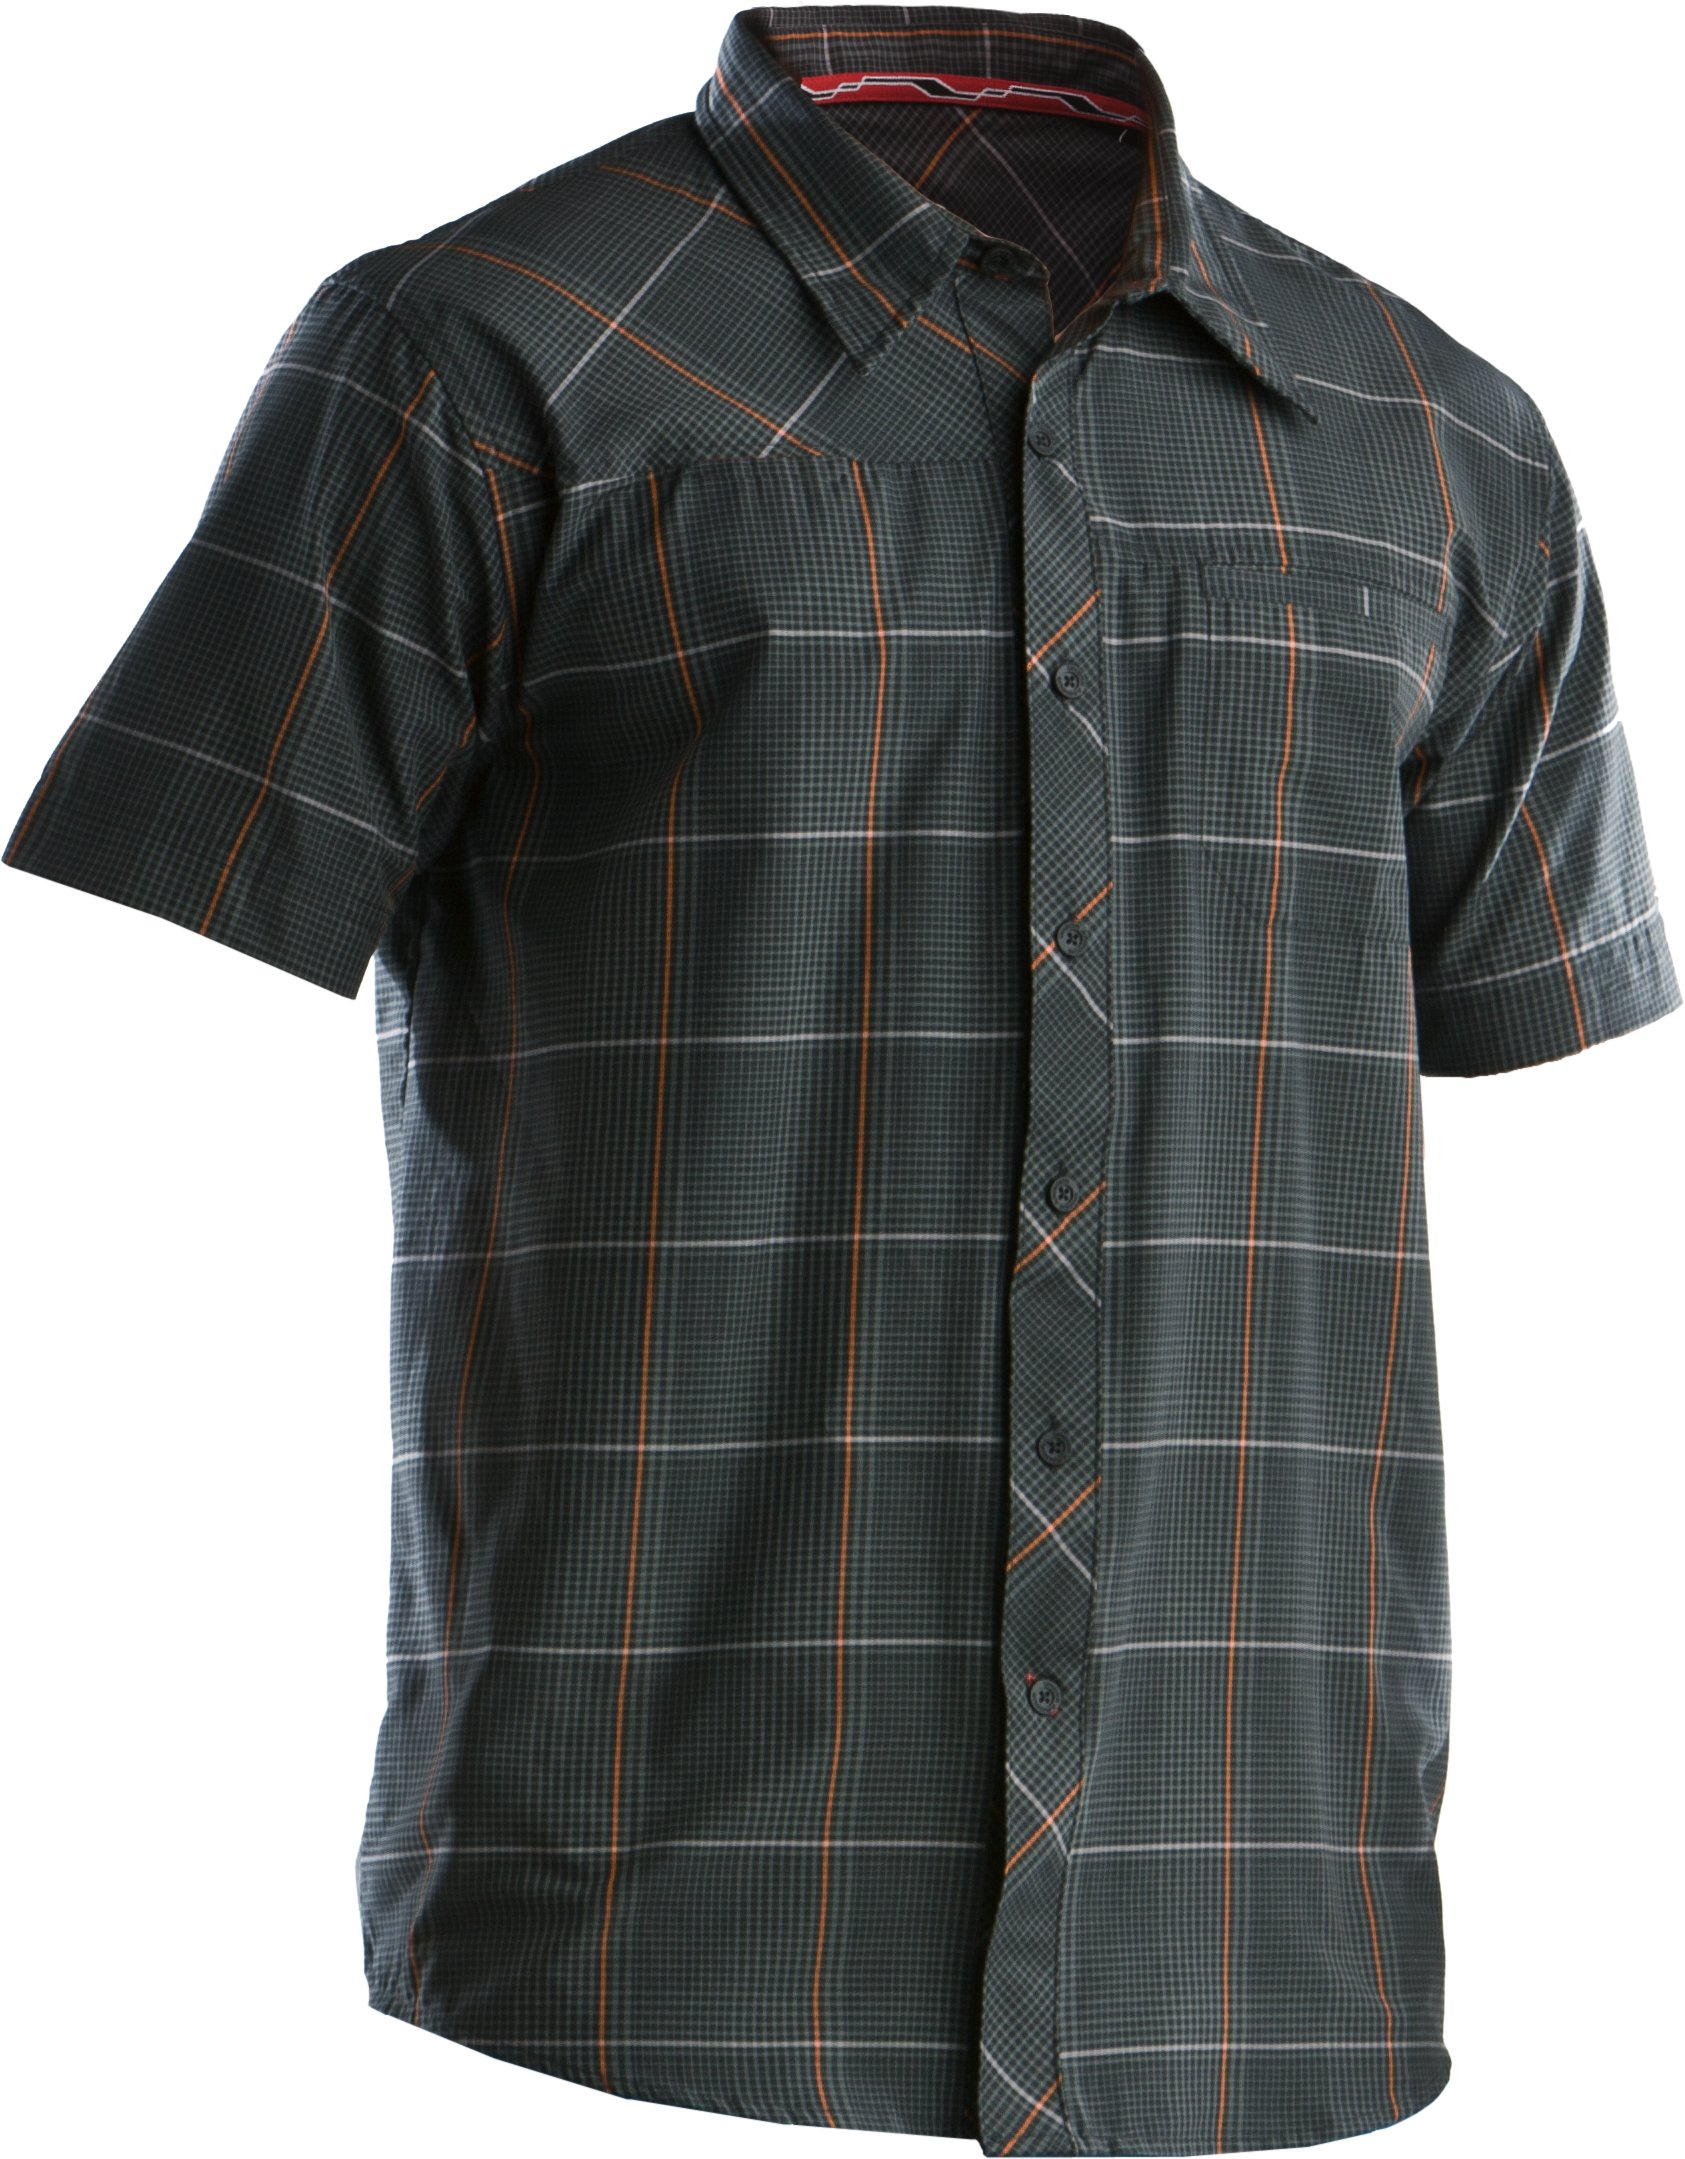 Men's Bocca Plaid Short Sleeve, Black , undefined